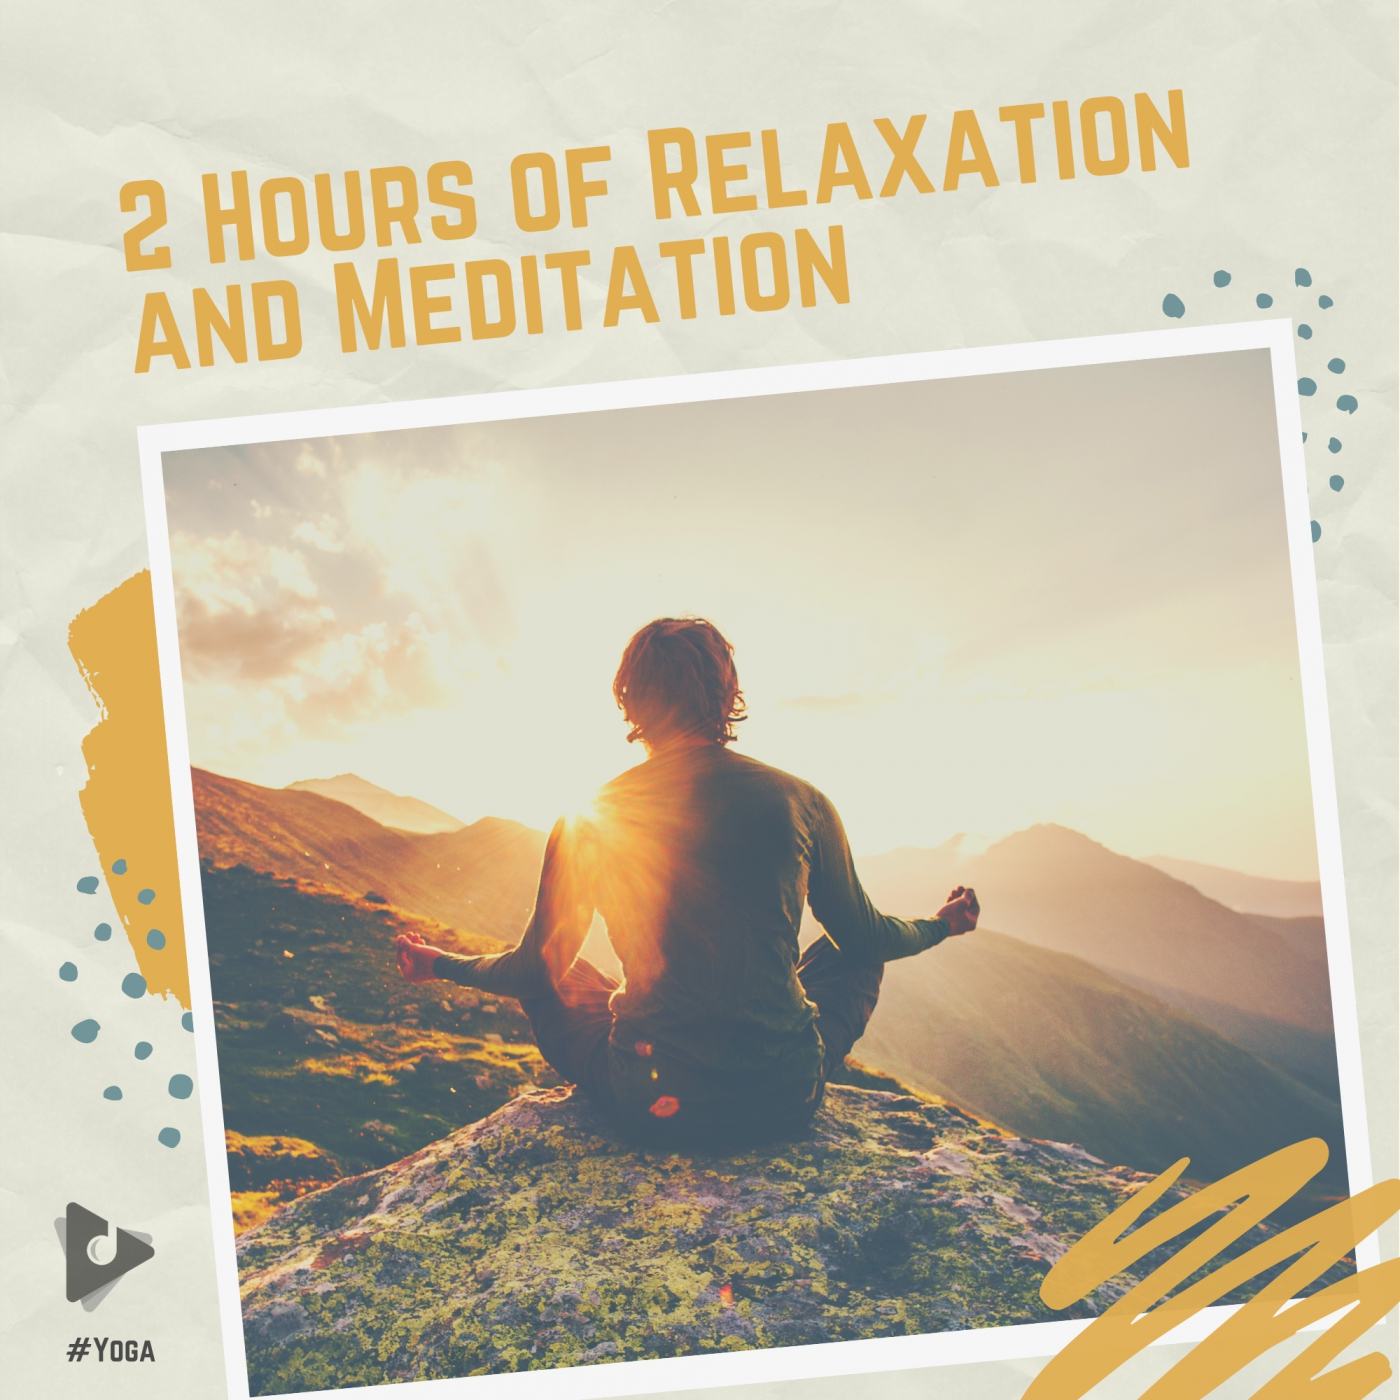 2 Hours of Relaxation and Meditation